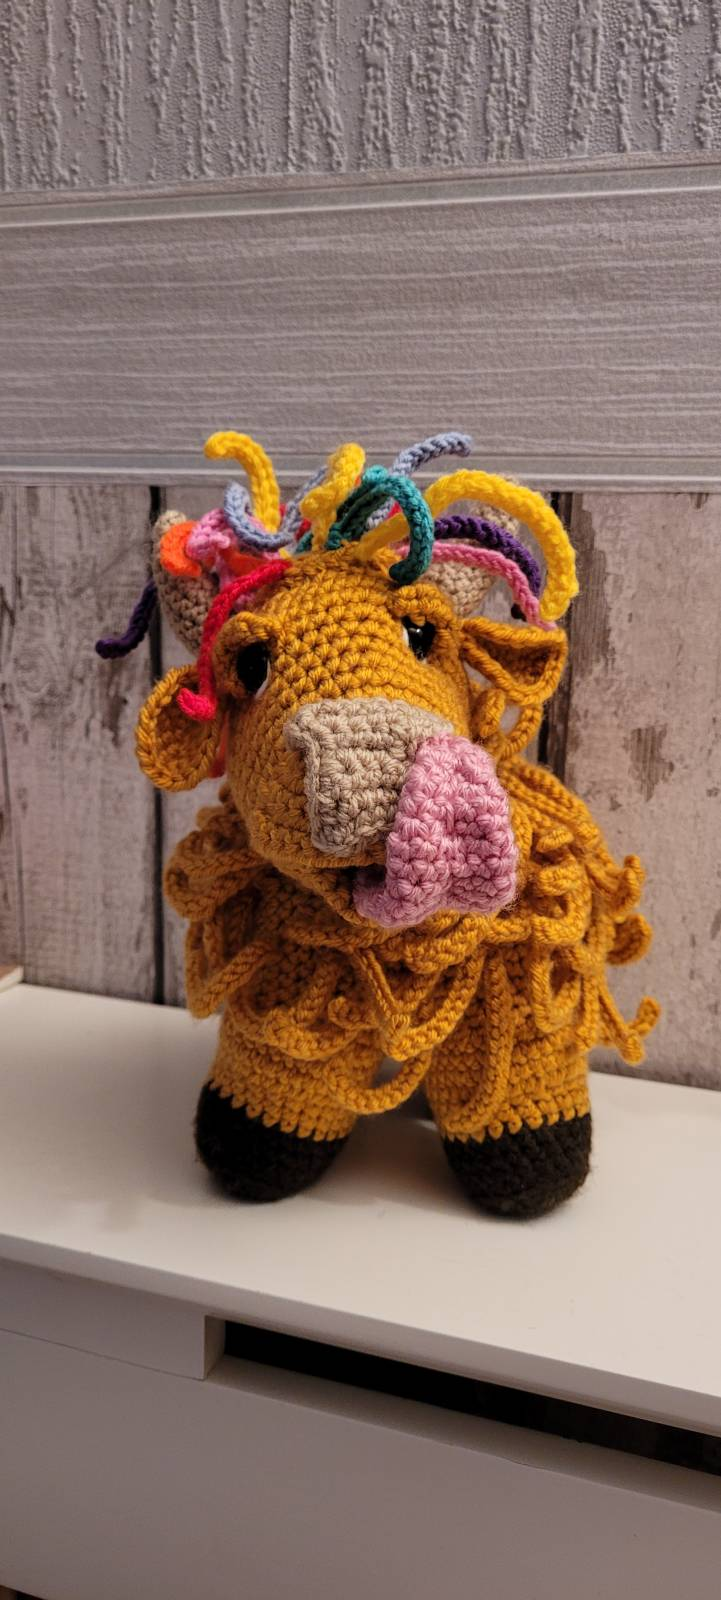 Amigurumi crochet highland doll pattern review by donna for cottontail & whiskers